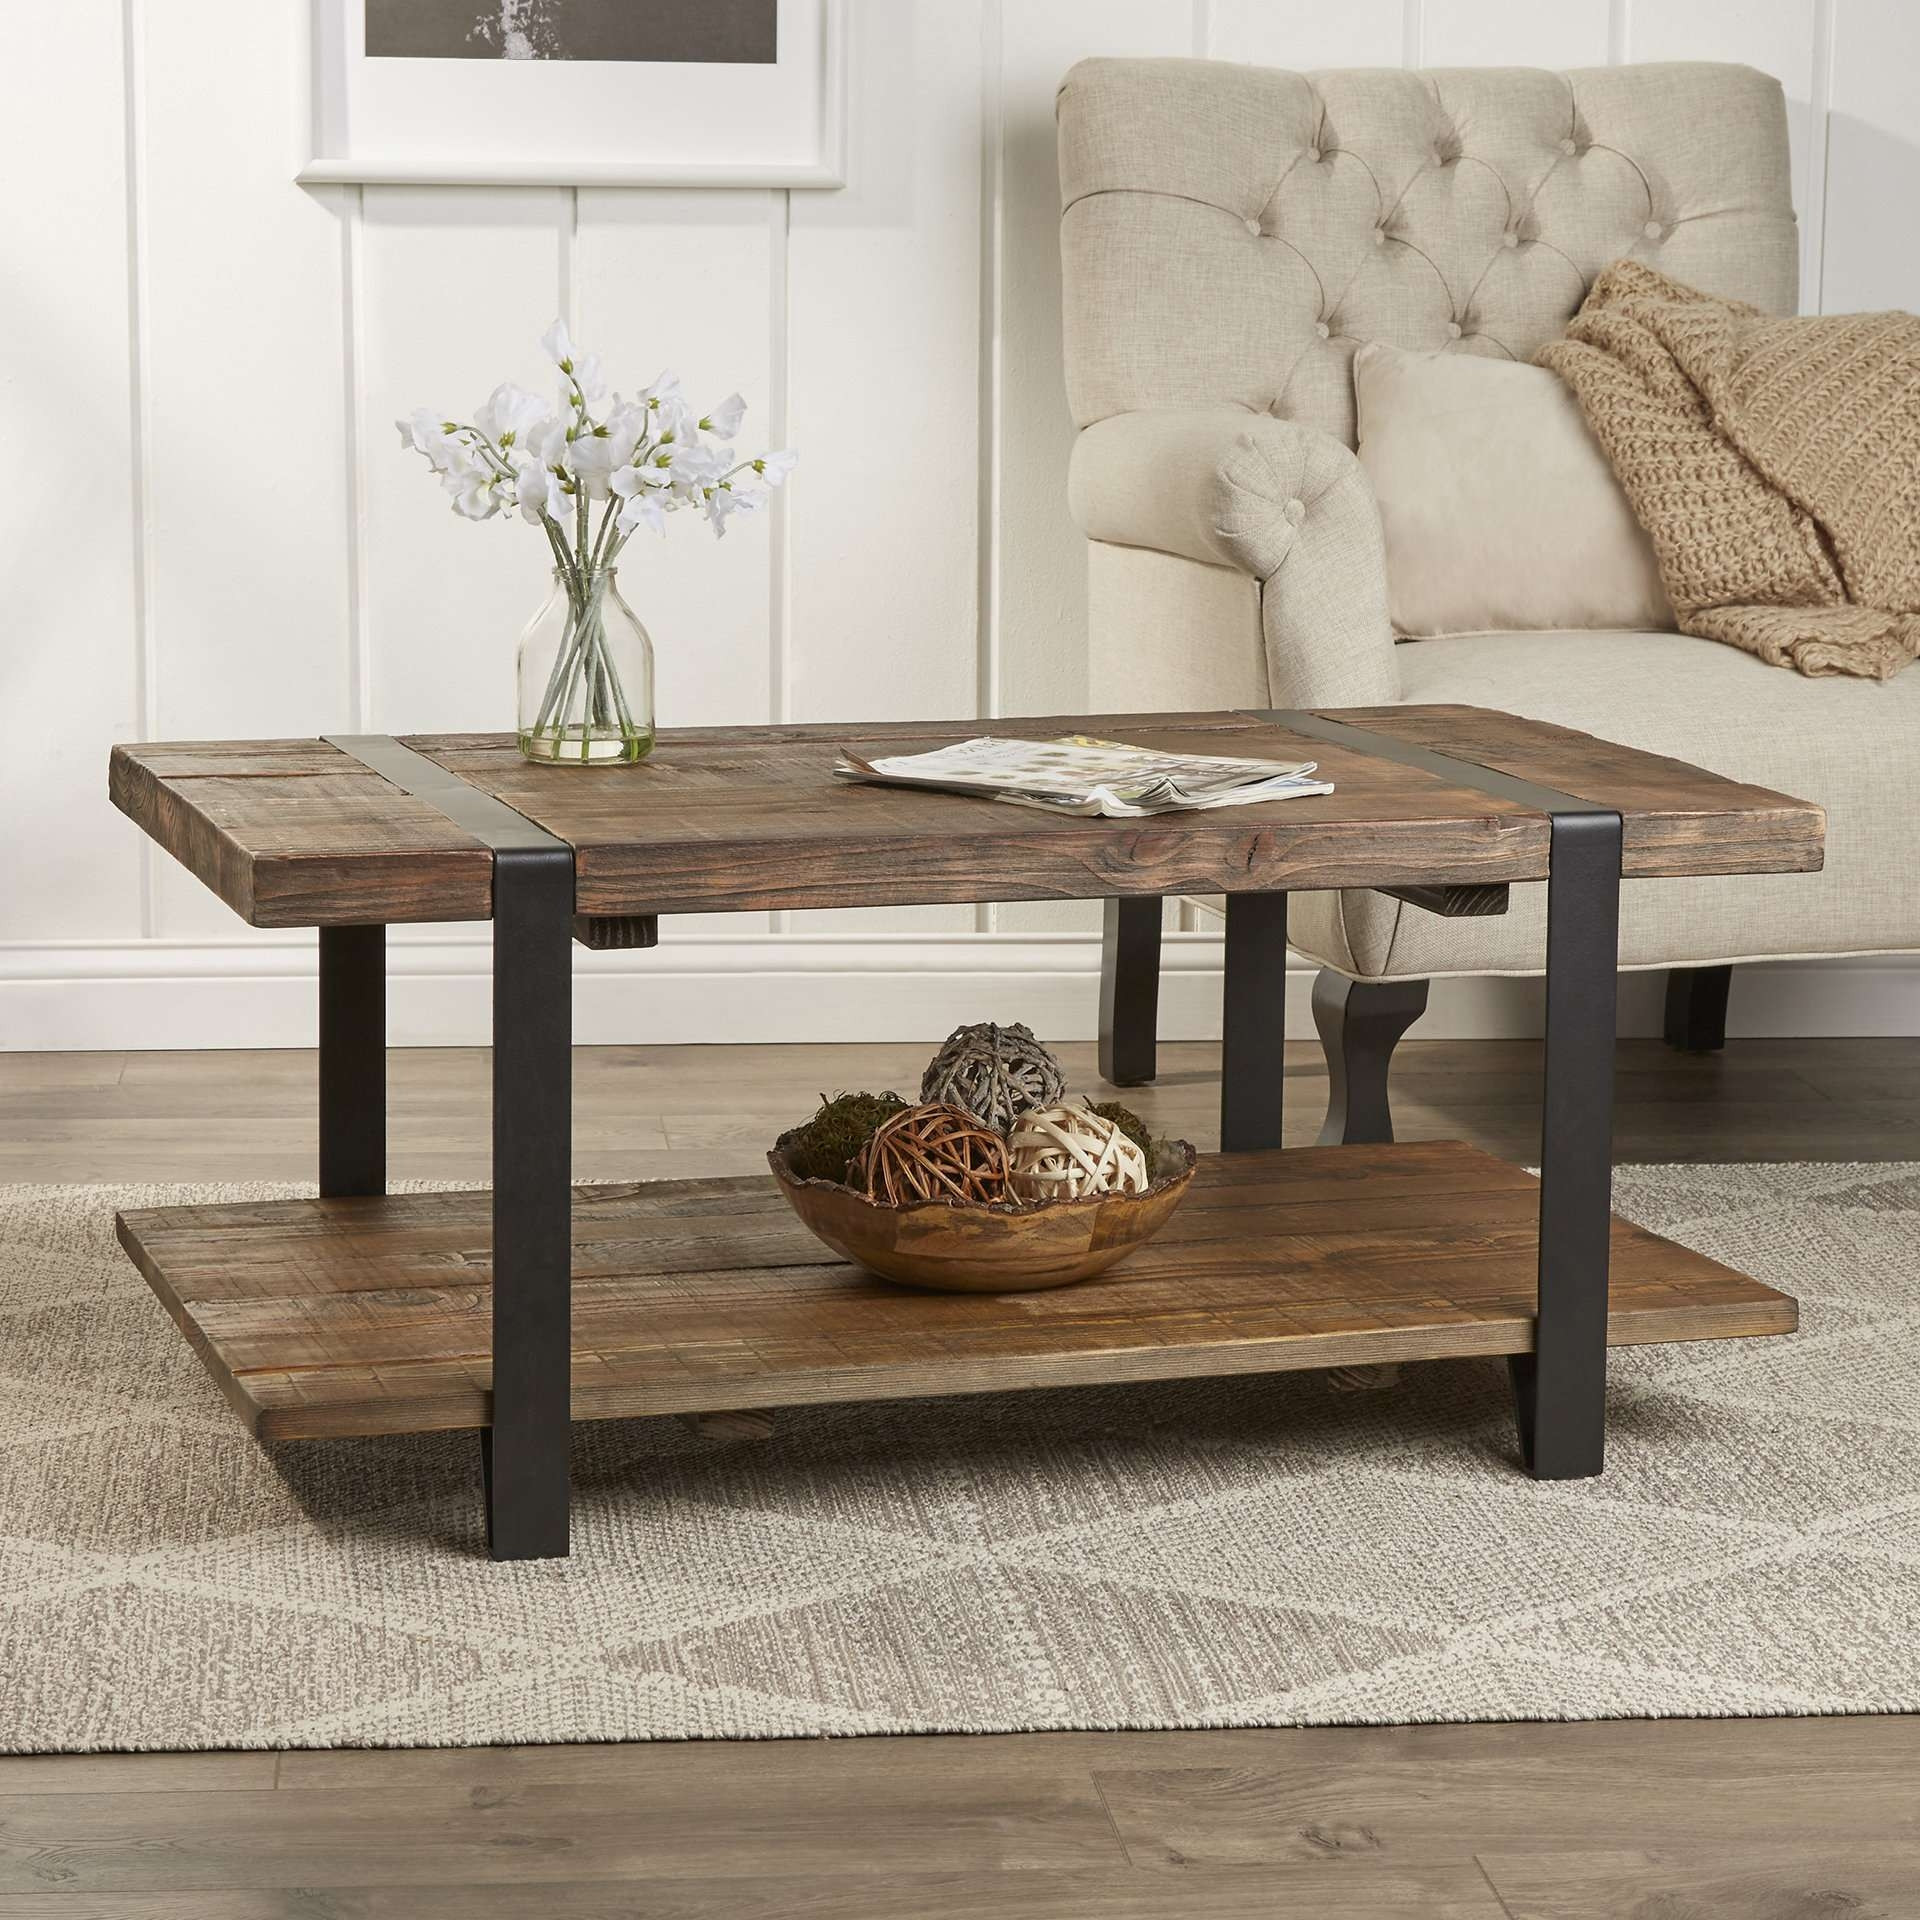 Most Recently Released Rustic Style Coffee Tables Inside Rustic Coffee Tables You'll Love (View 12 of 20)